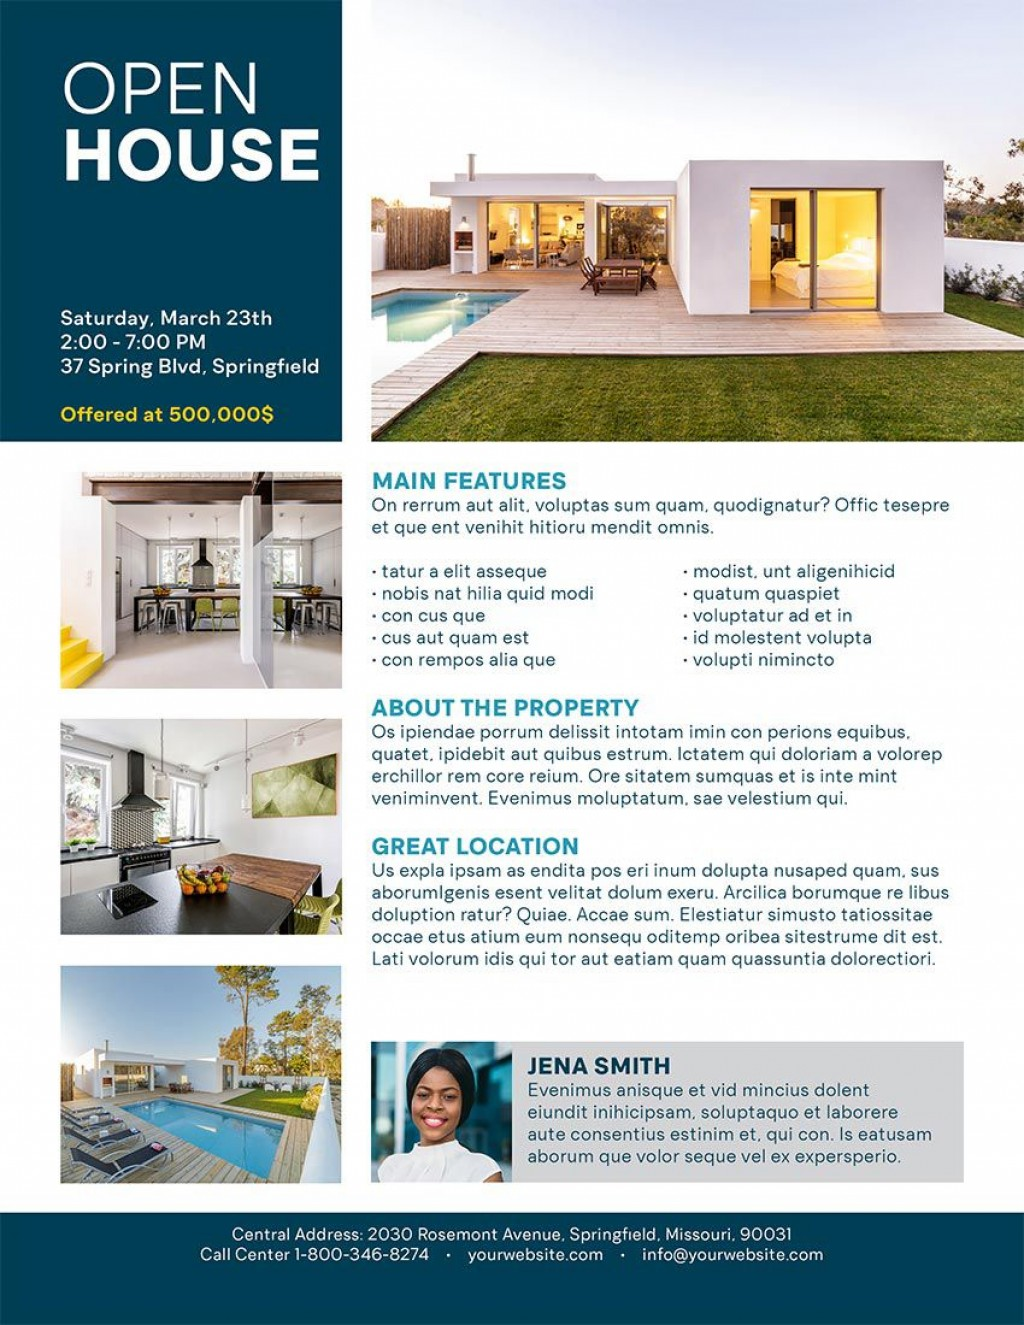 001 Archaicawful Open House Flyer Template Example  Templates Word Free School MicrosoftLarge